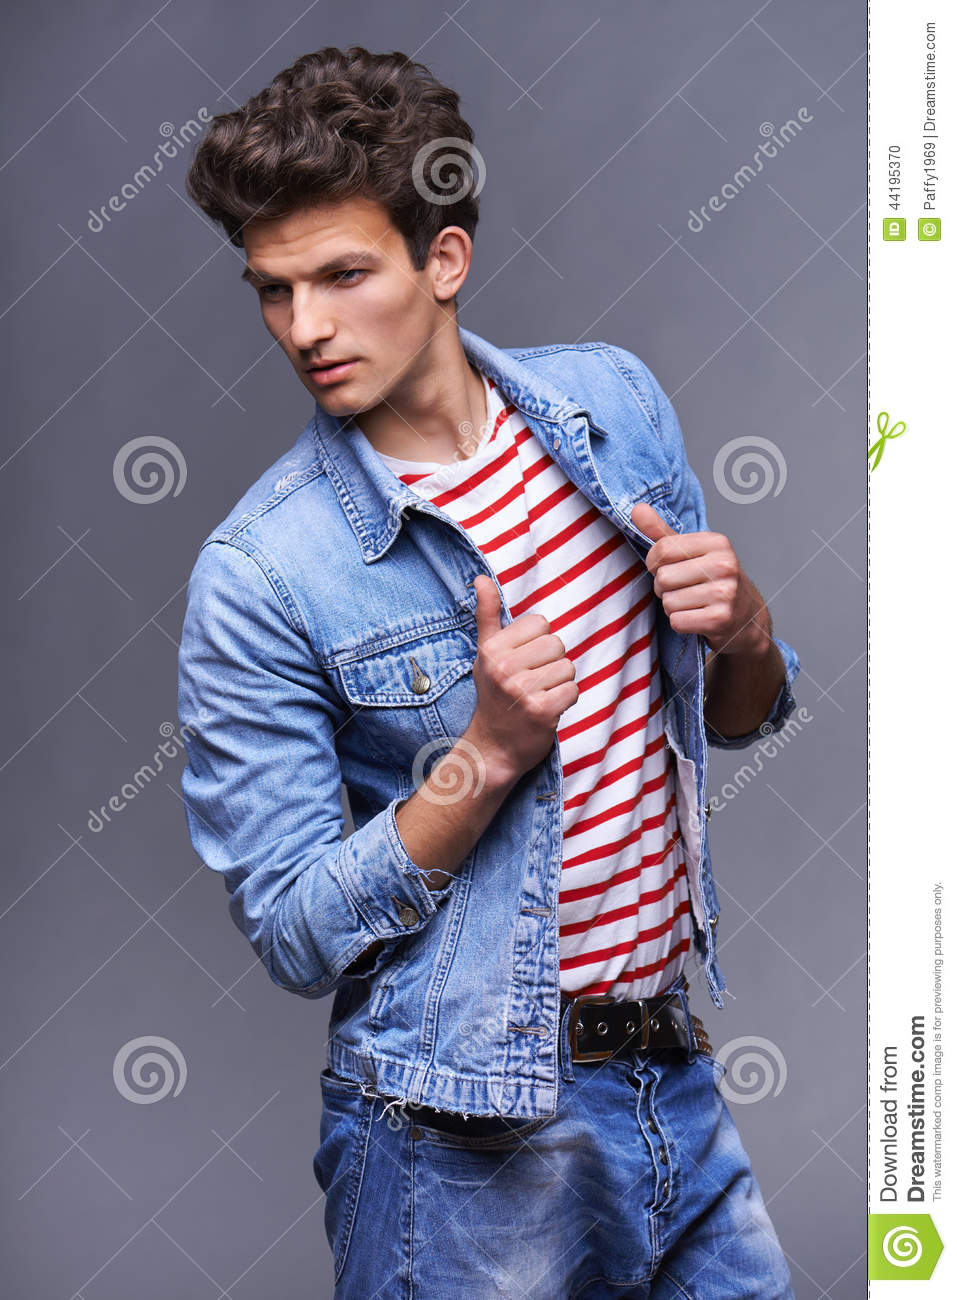 Male fashion model with modern haircut